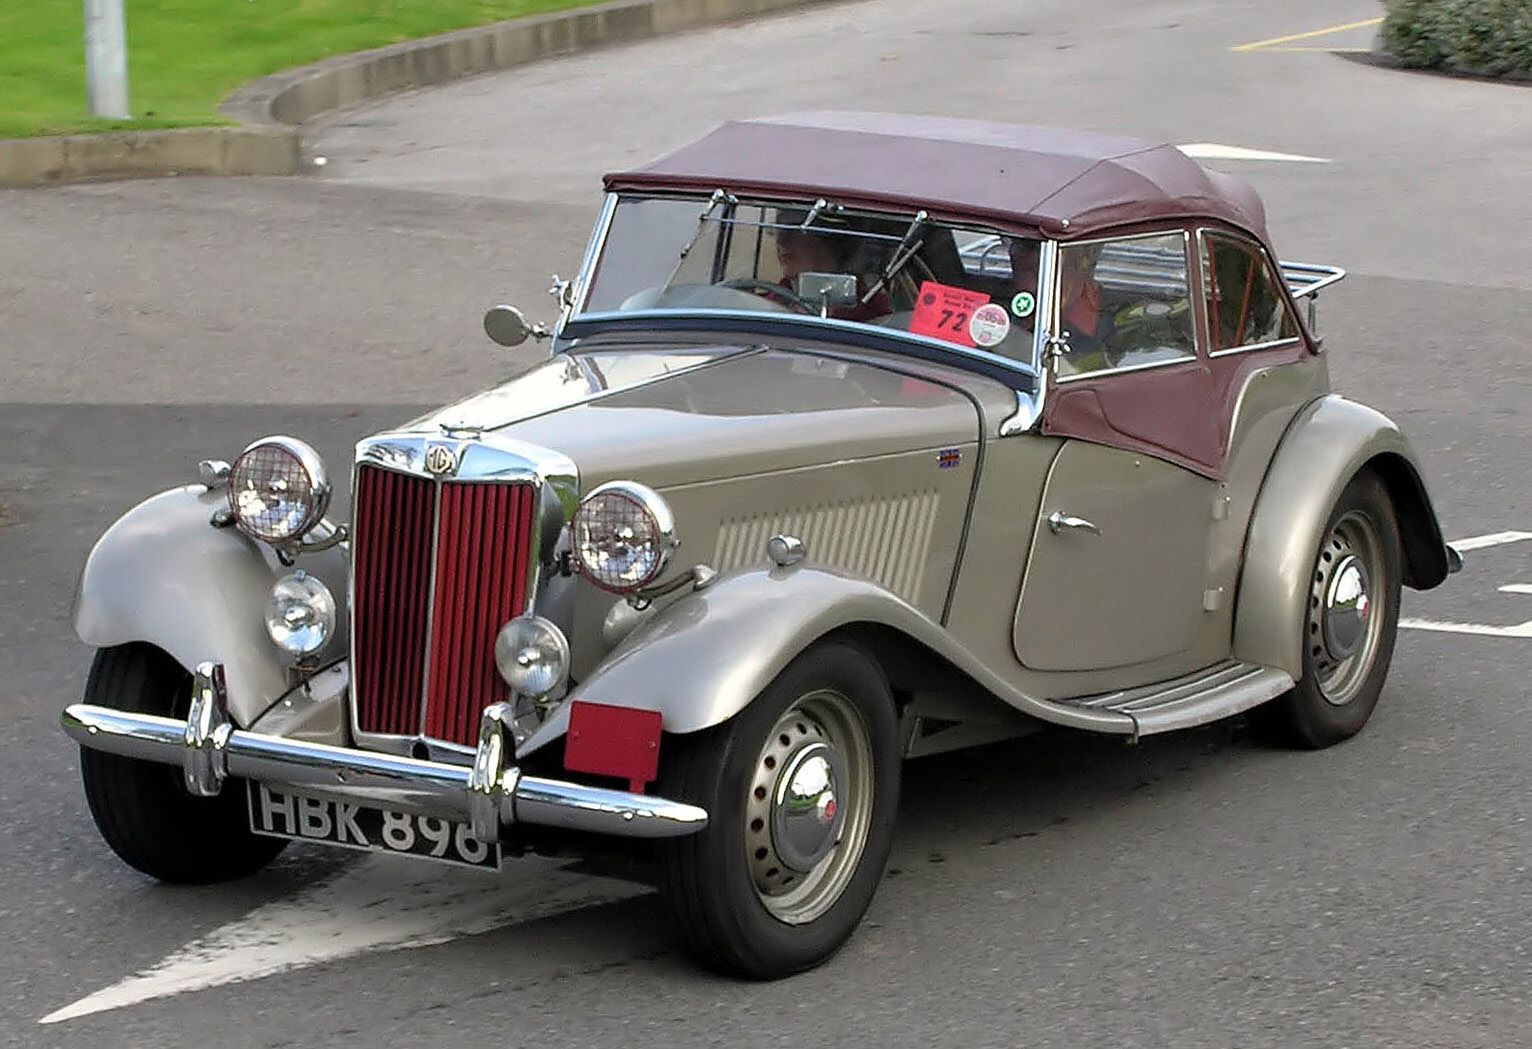 27 Best Classic Cars Vintage Automobiles Ideas | Cars, Vehicle and ...